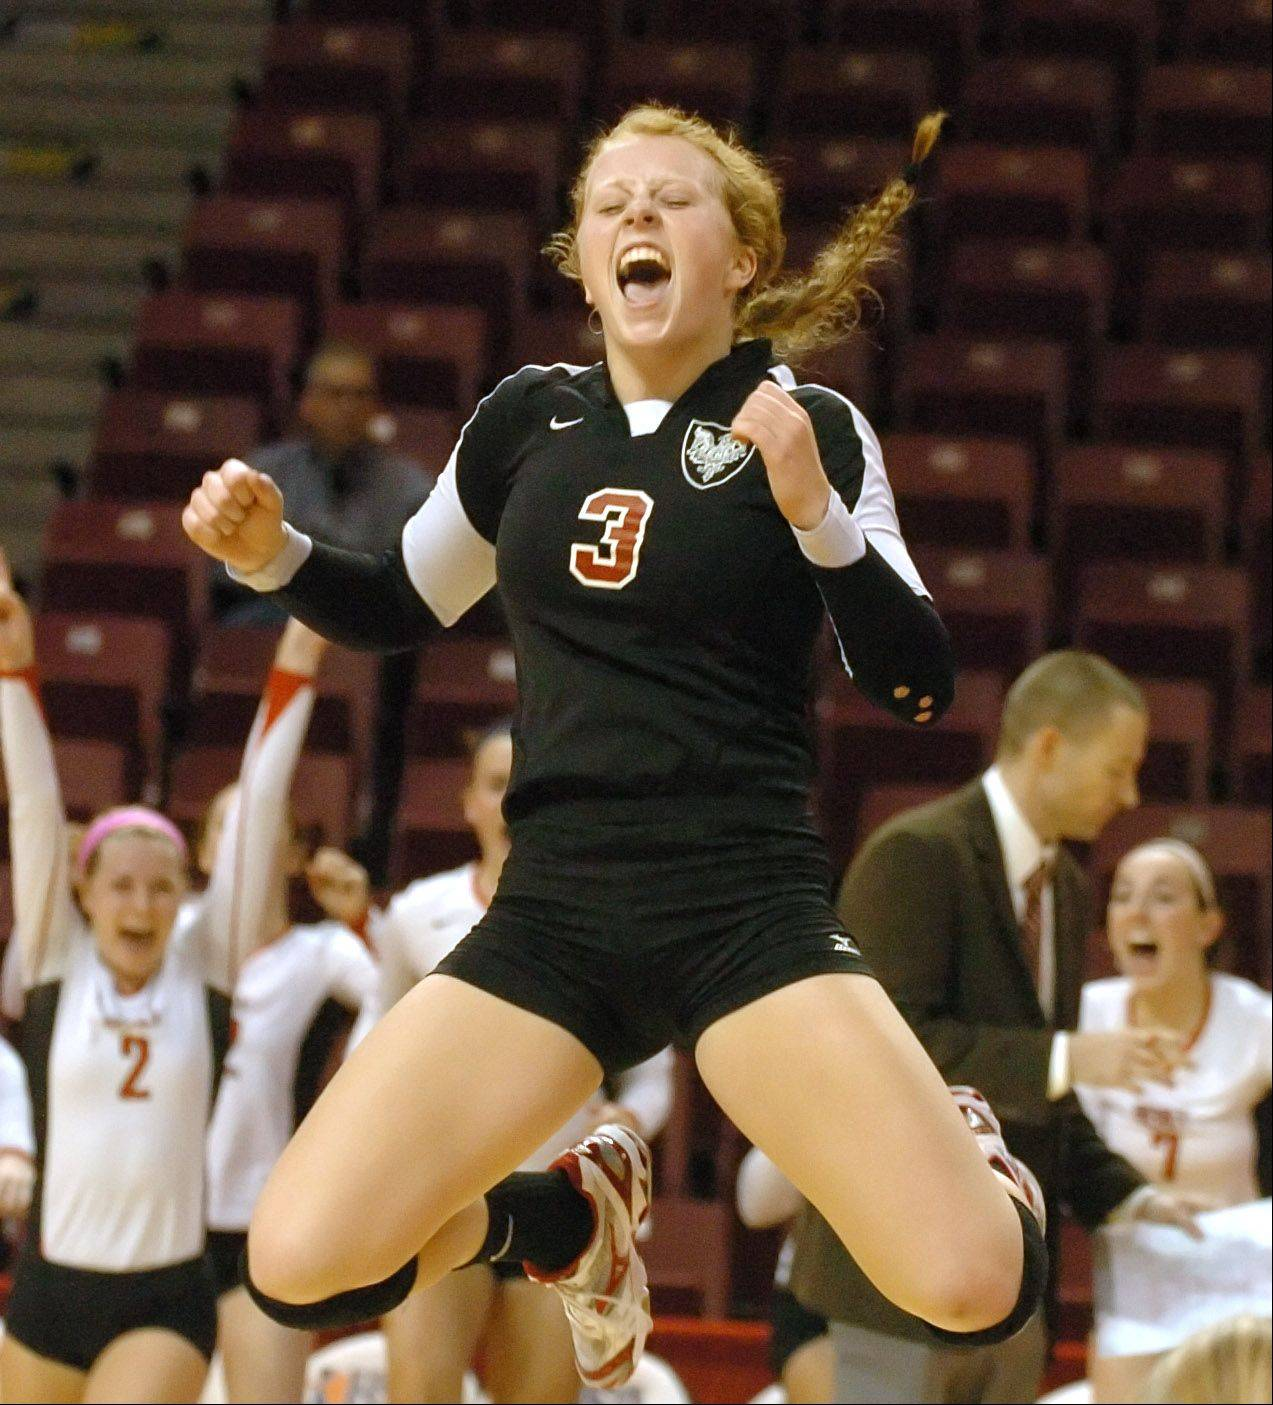 Benet's Sheila Doyle celebrates their win Friday over Libertyville during the class 4A girls volleyball semifinal at Illinois State University.